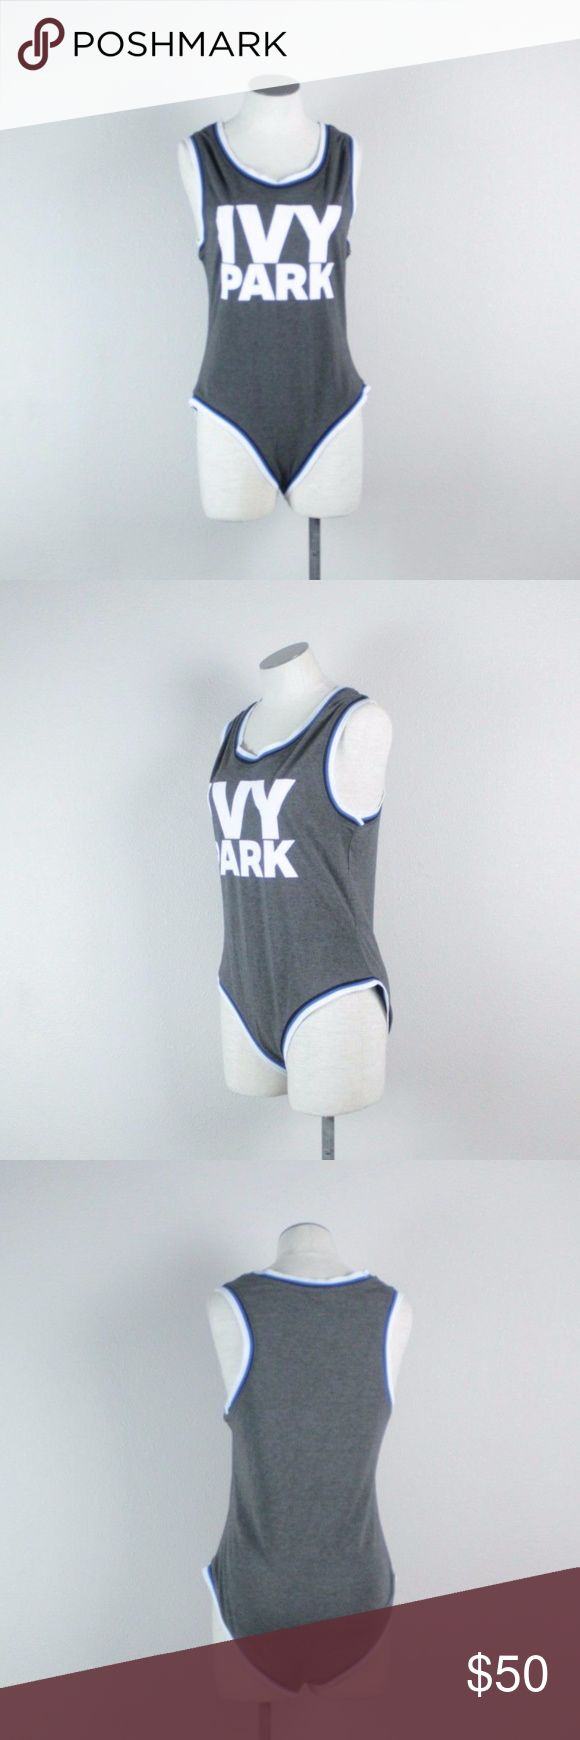 Ivy Park Logo Grey Stripe Bodysuit One Piece M Ivy Park Grey White Blue Logo Bodysuit One Piece Size Medium  New with tags missing sales tags  Made in Turky  58% Polyester 30% Viscose 12% Elastane  Measurements taken with the garment laid flat and not stretched: Armpit to armpit 16 inches Length - shoulder to crotch 29 inches Ivy Park Tops Tank Tops